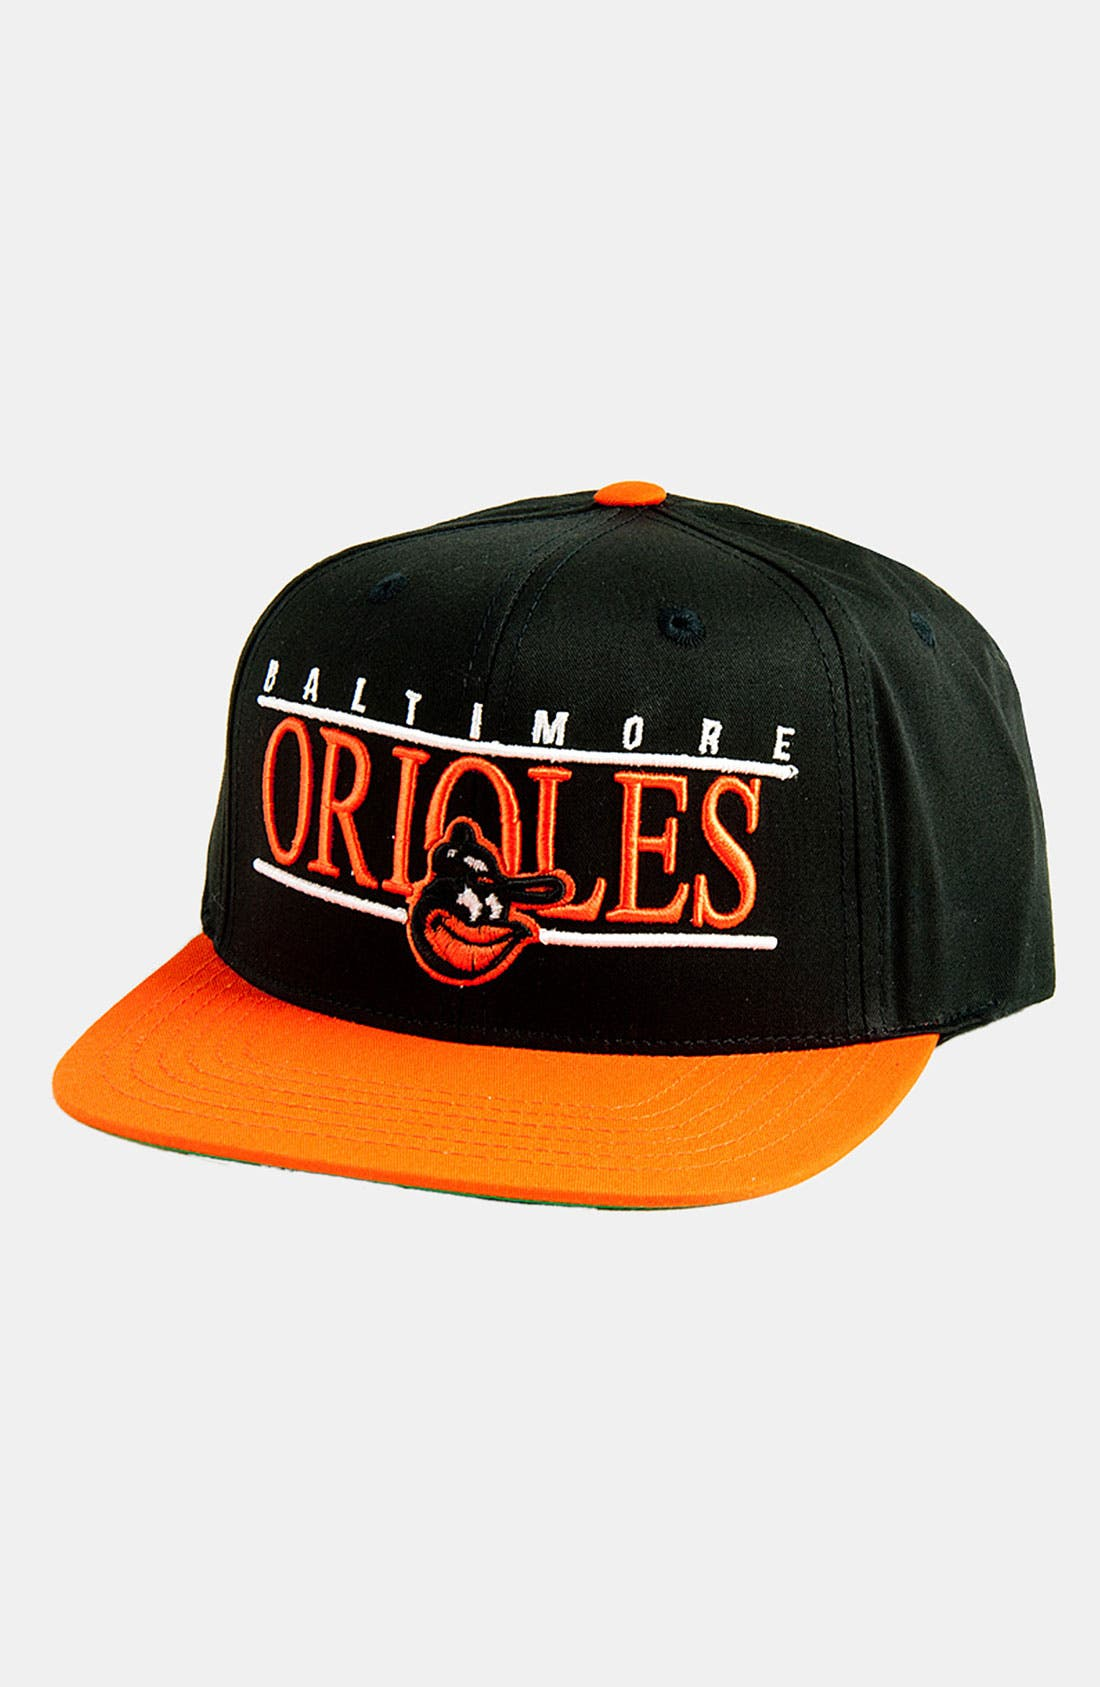 Alternate Image 1 Selected - American Needle 'Baltimore Orioles - Nineties' Twill Snapback Baseball Cap